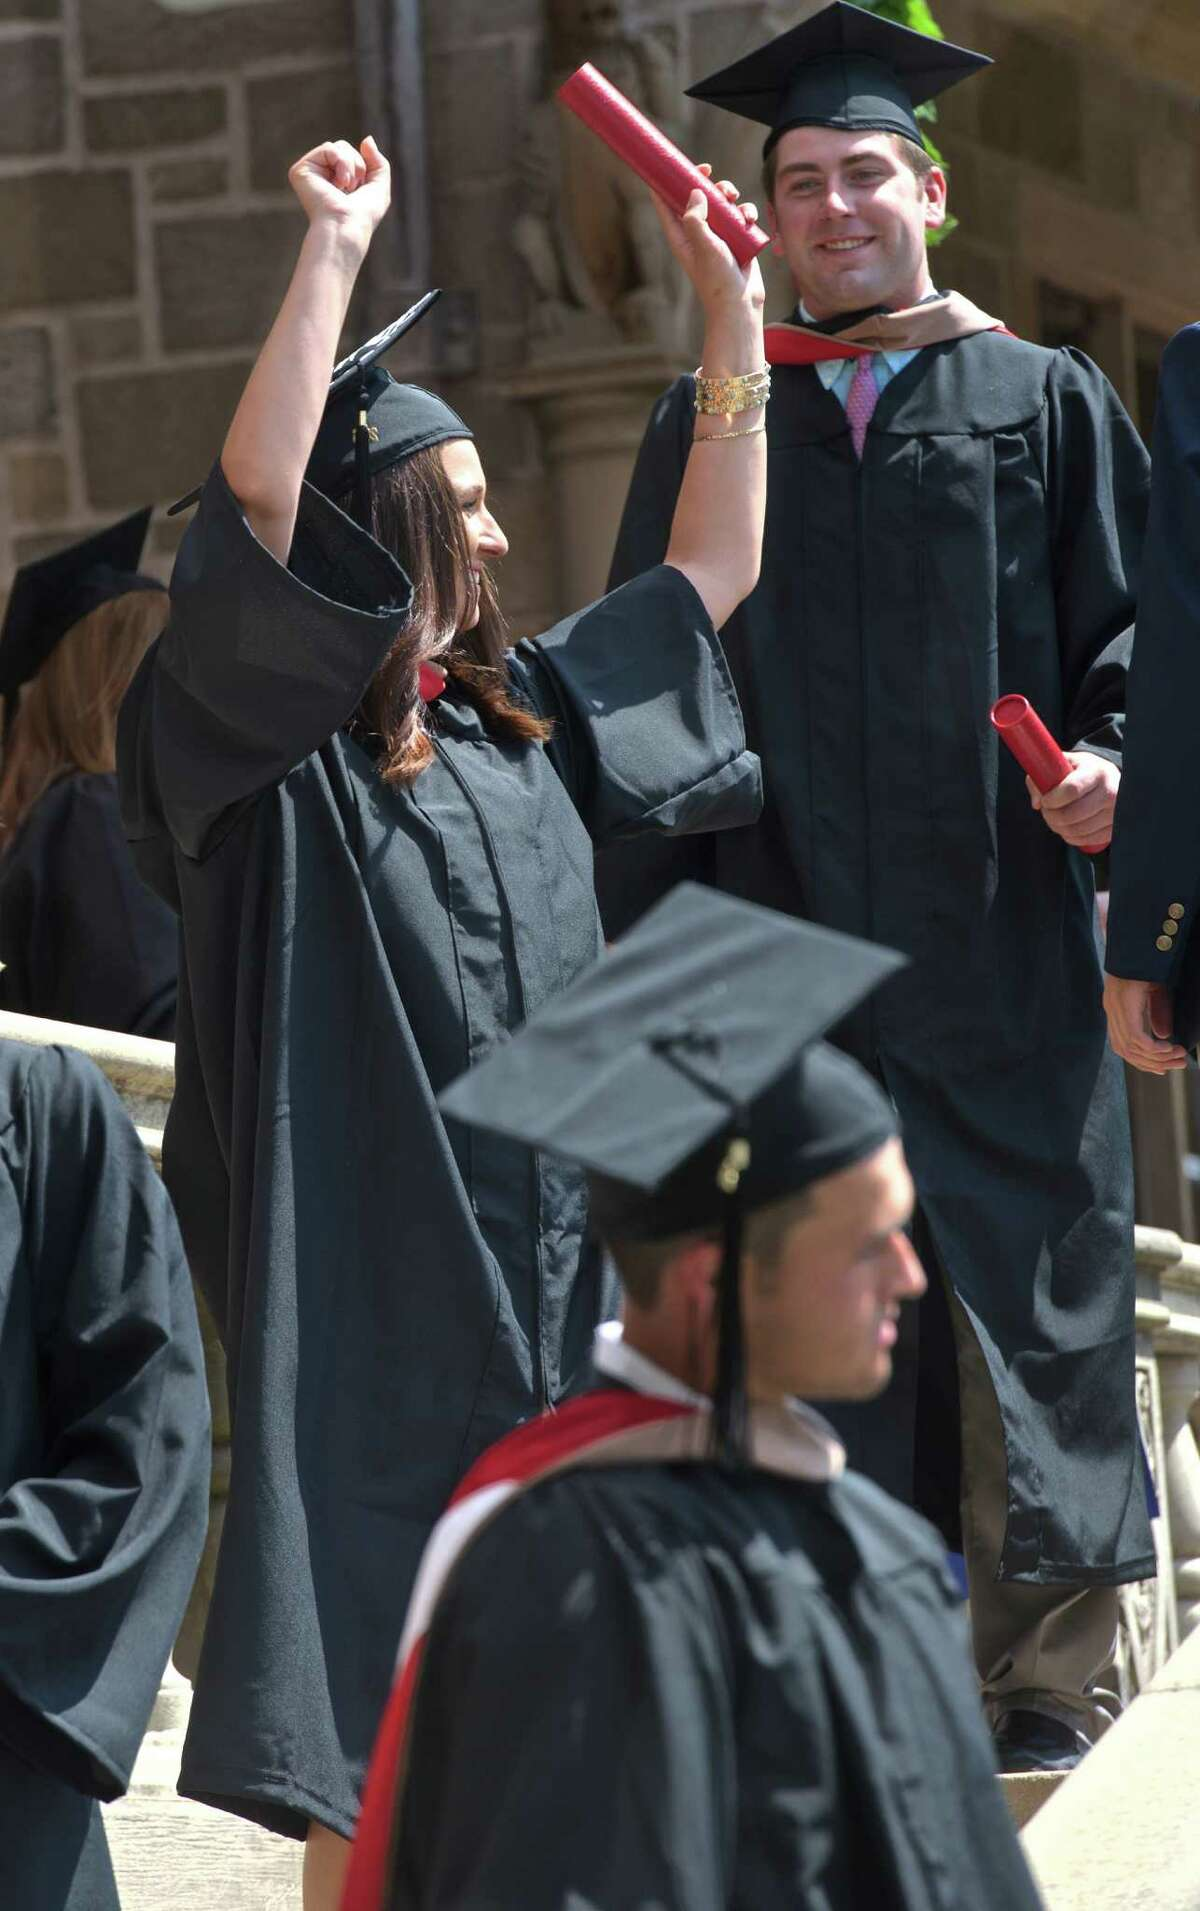 Ashley Seaglione, from Long Island, NY, holds up her arms after receiving her diploma during the 2015 Fairfield University Commencement held on the Bellarmine Terrace of Fairfield University, Sunday morning, May 17, 2015, in Fairfield, Conn. Seaglione earned her degree from the Charles F. Dolan School of Business.